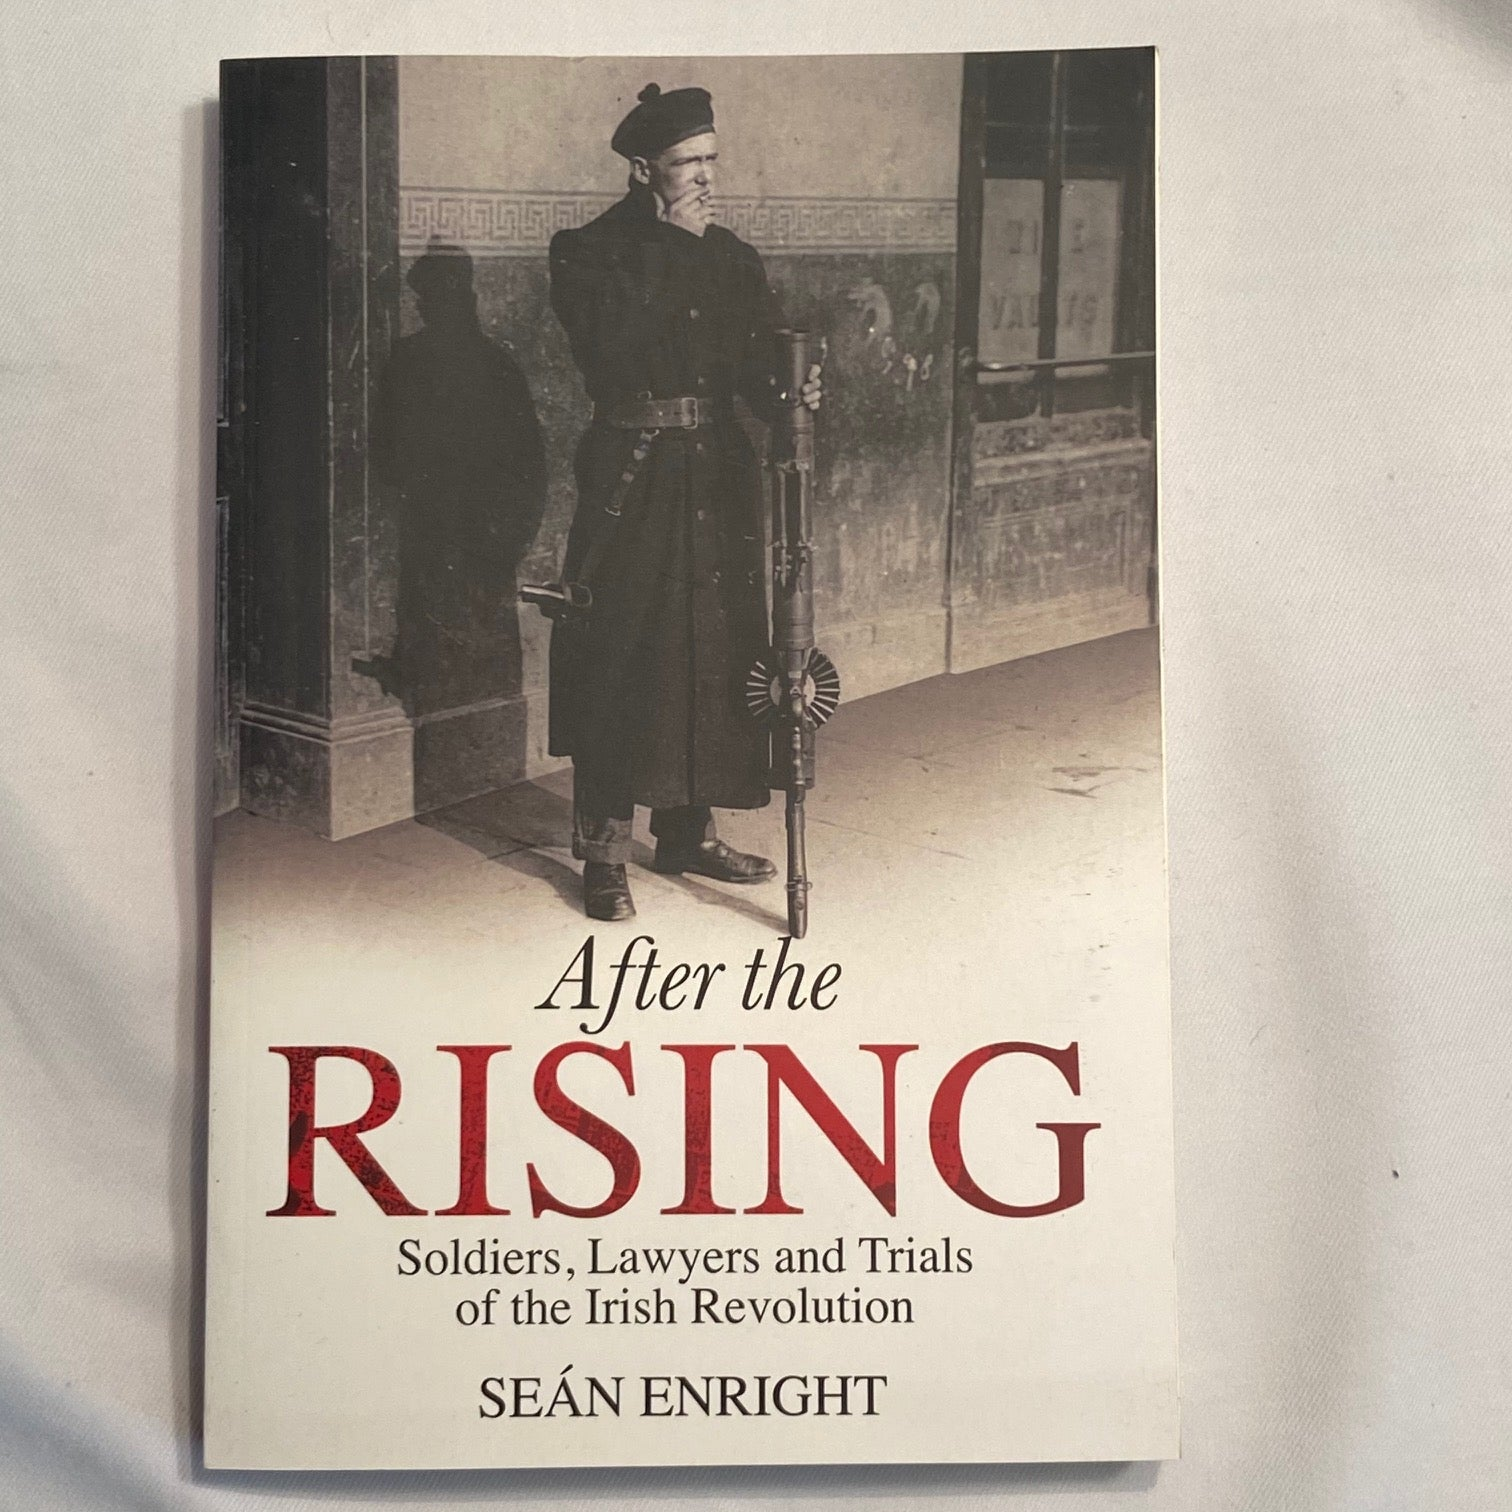 Image of After the Rising: Soldiers Lawyers and trials of the irish revolution